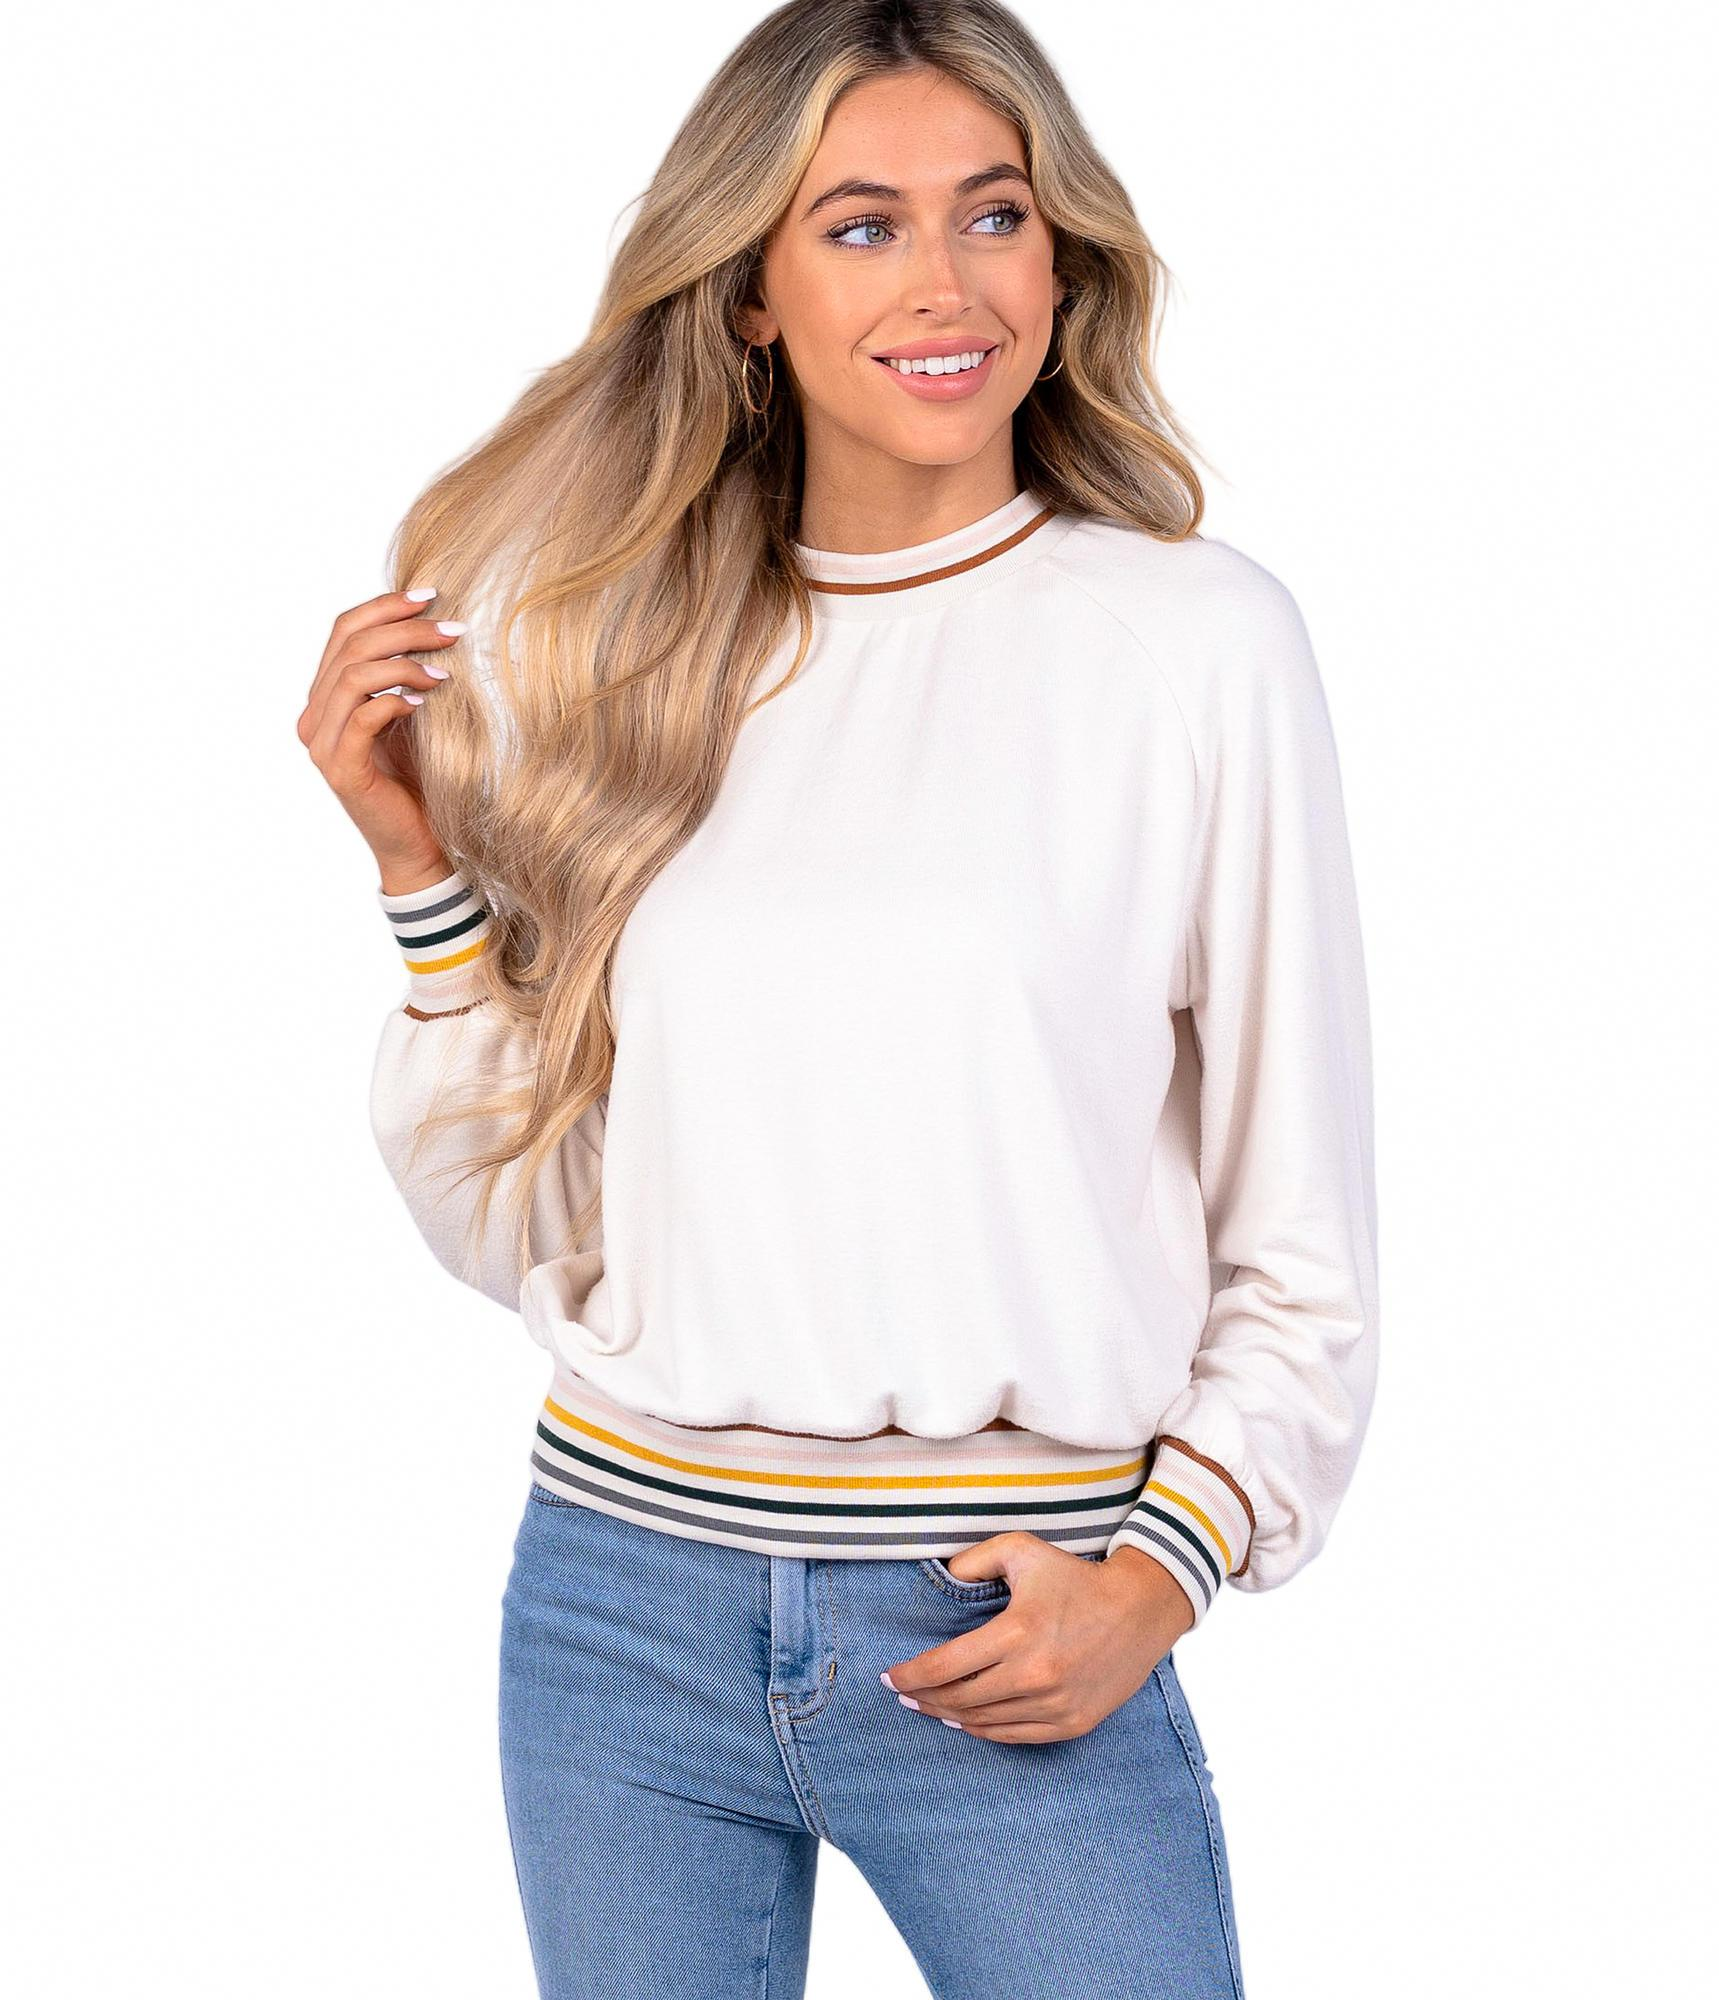 SOUTHERN SHIRT CO. Women's Sweater Southern Shirt Yard Line Sweater || David's Clothing